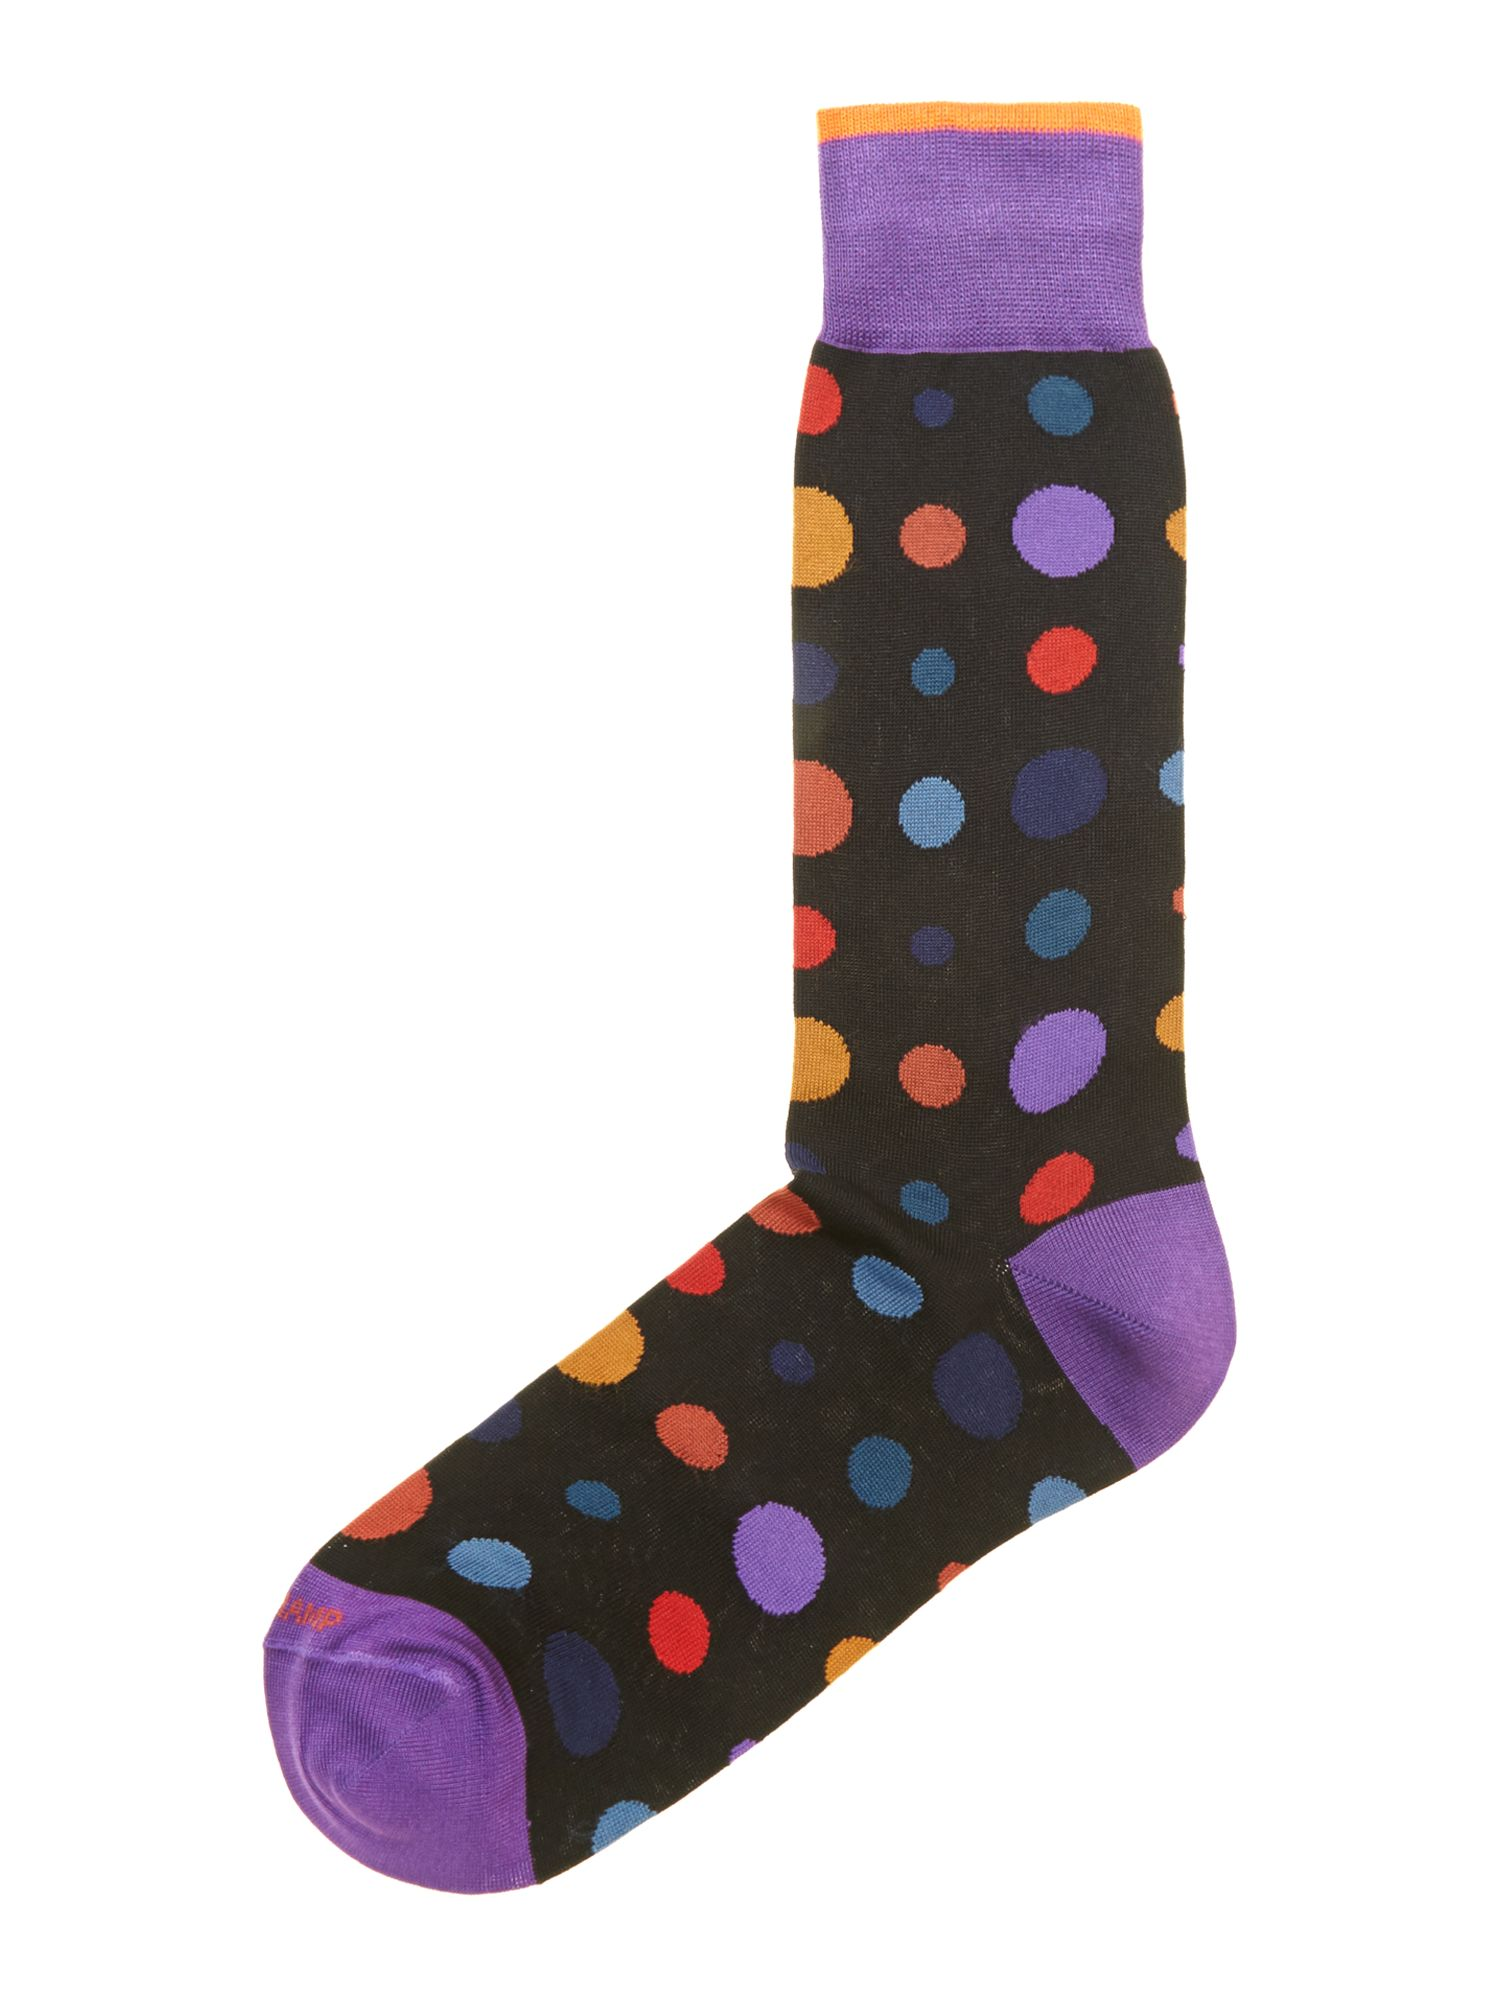 Star dot sock